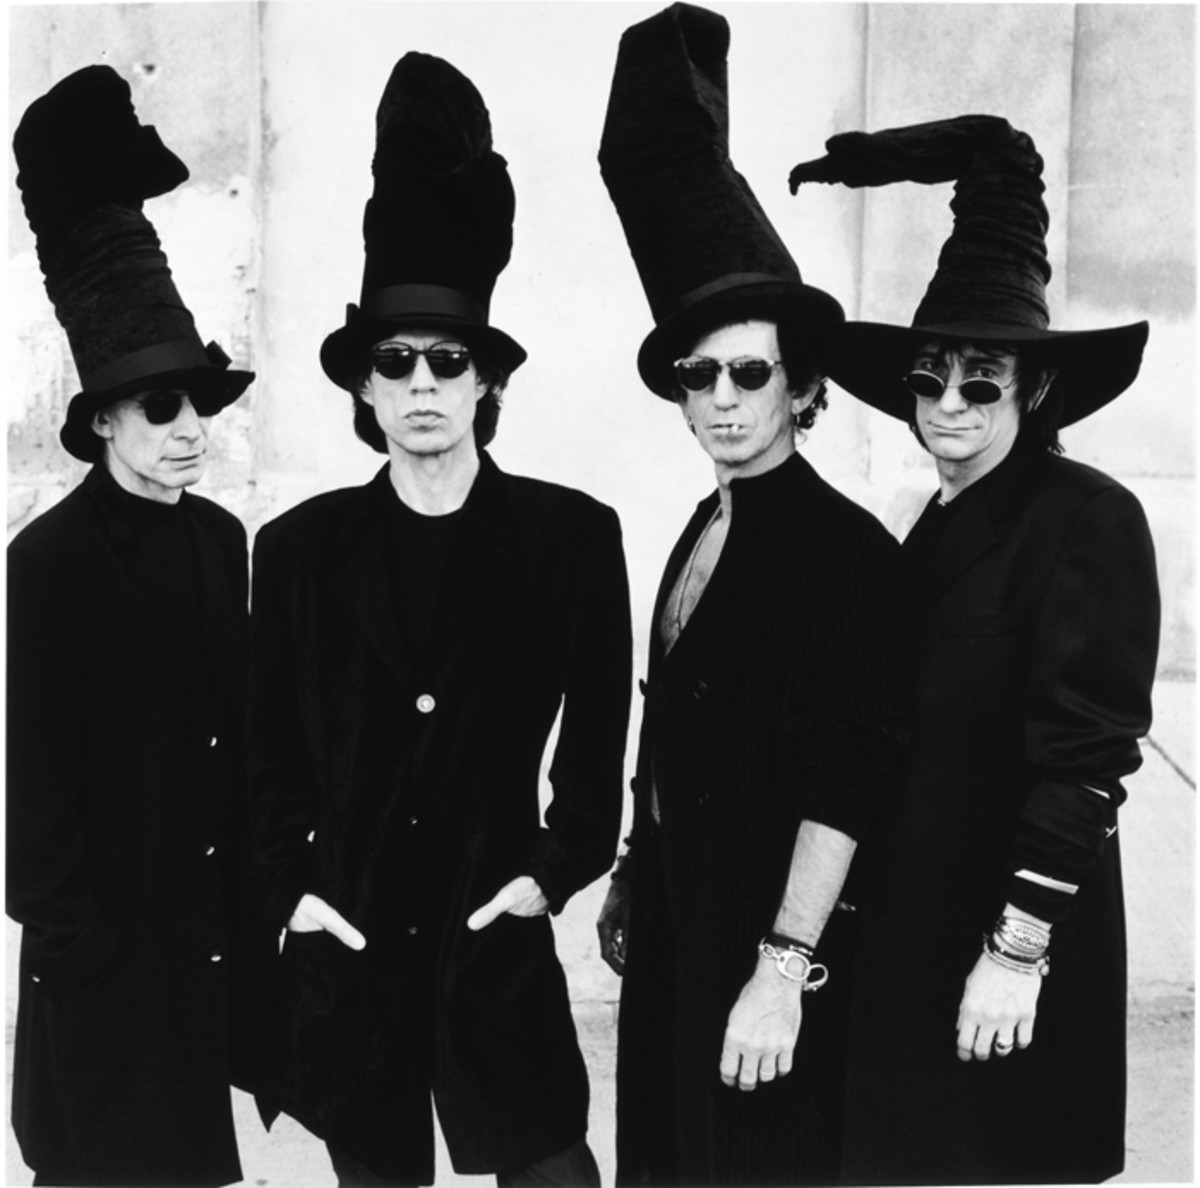 The Rolling Stones in black and white. All images courtesy of Rolling Stones Archive.